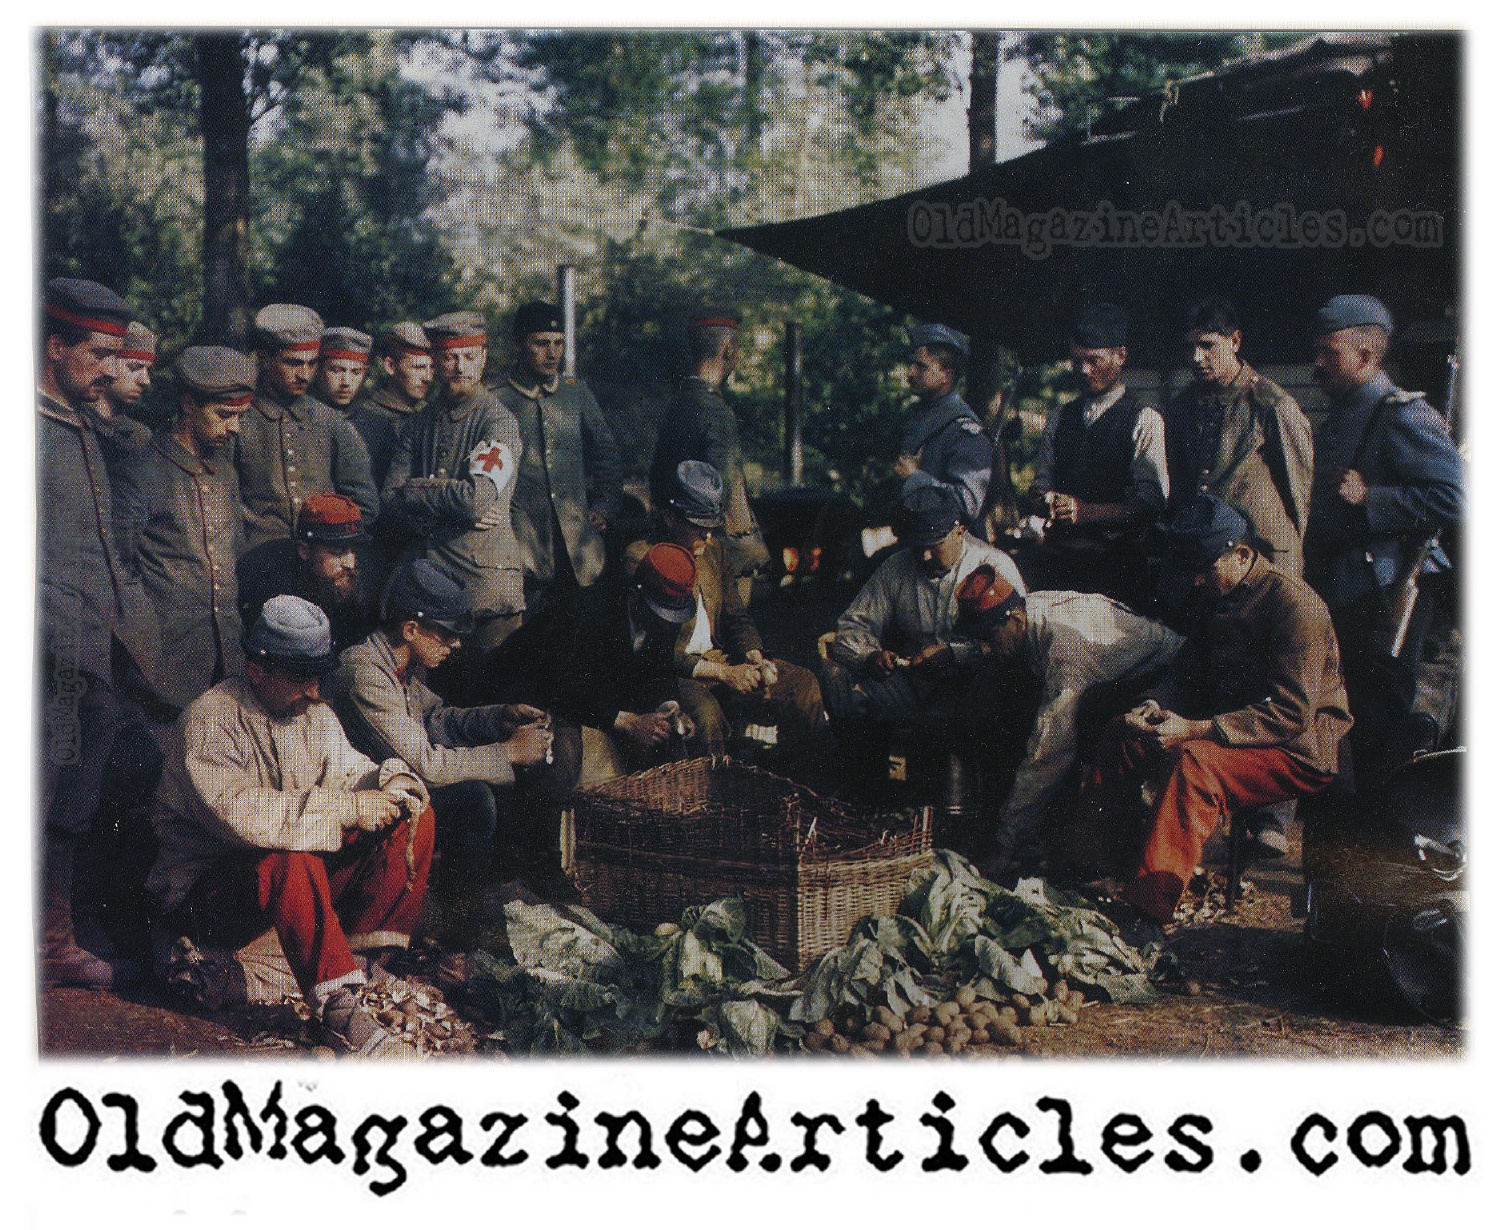 WW1 COLOR PICTURE 1914 PRISONERS | GERMAN POWS FROM BATTLE OF THE